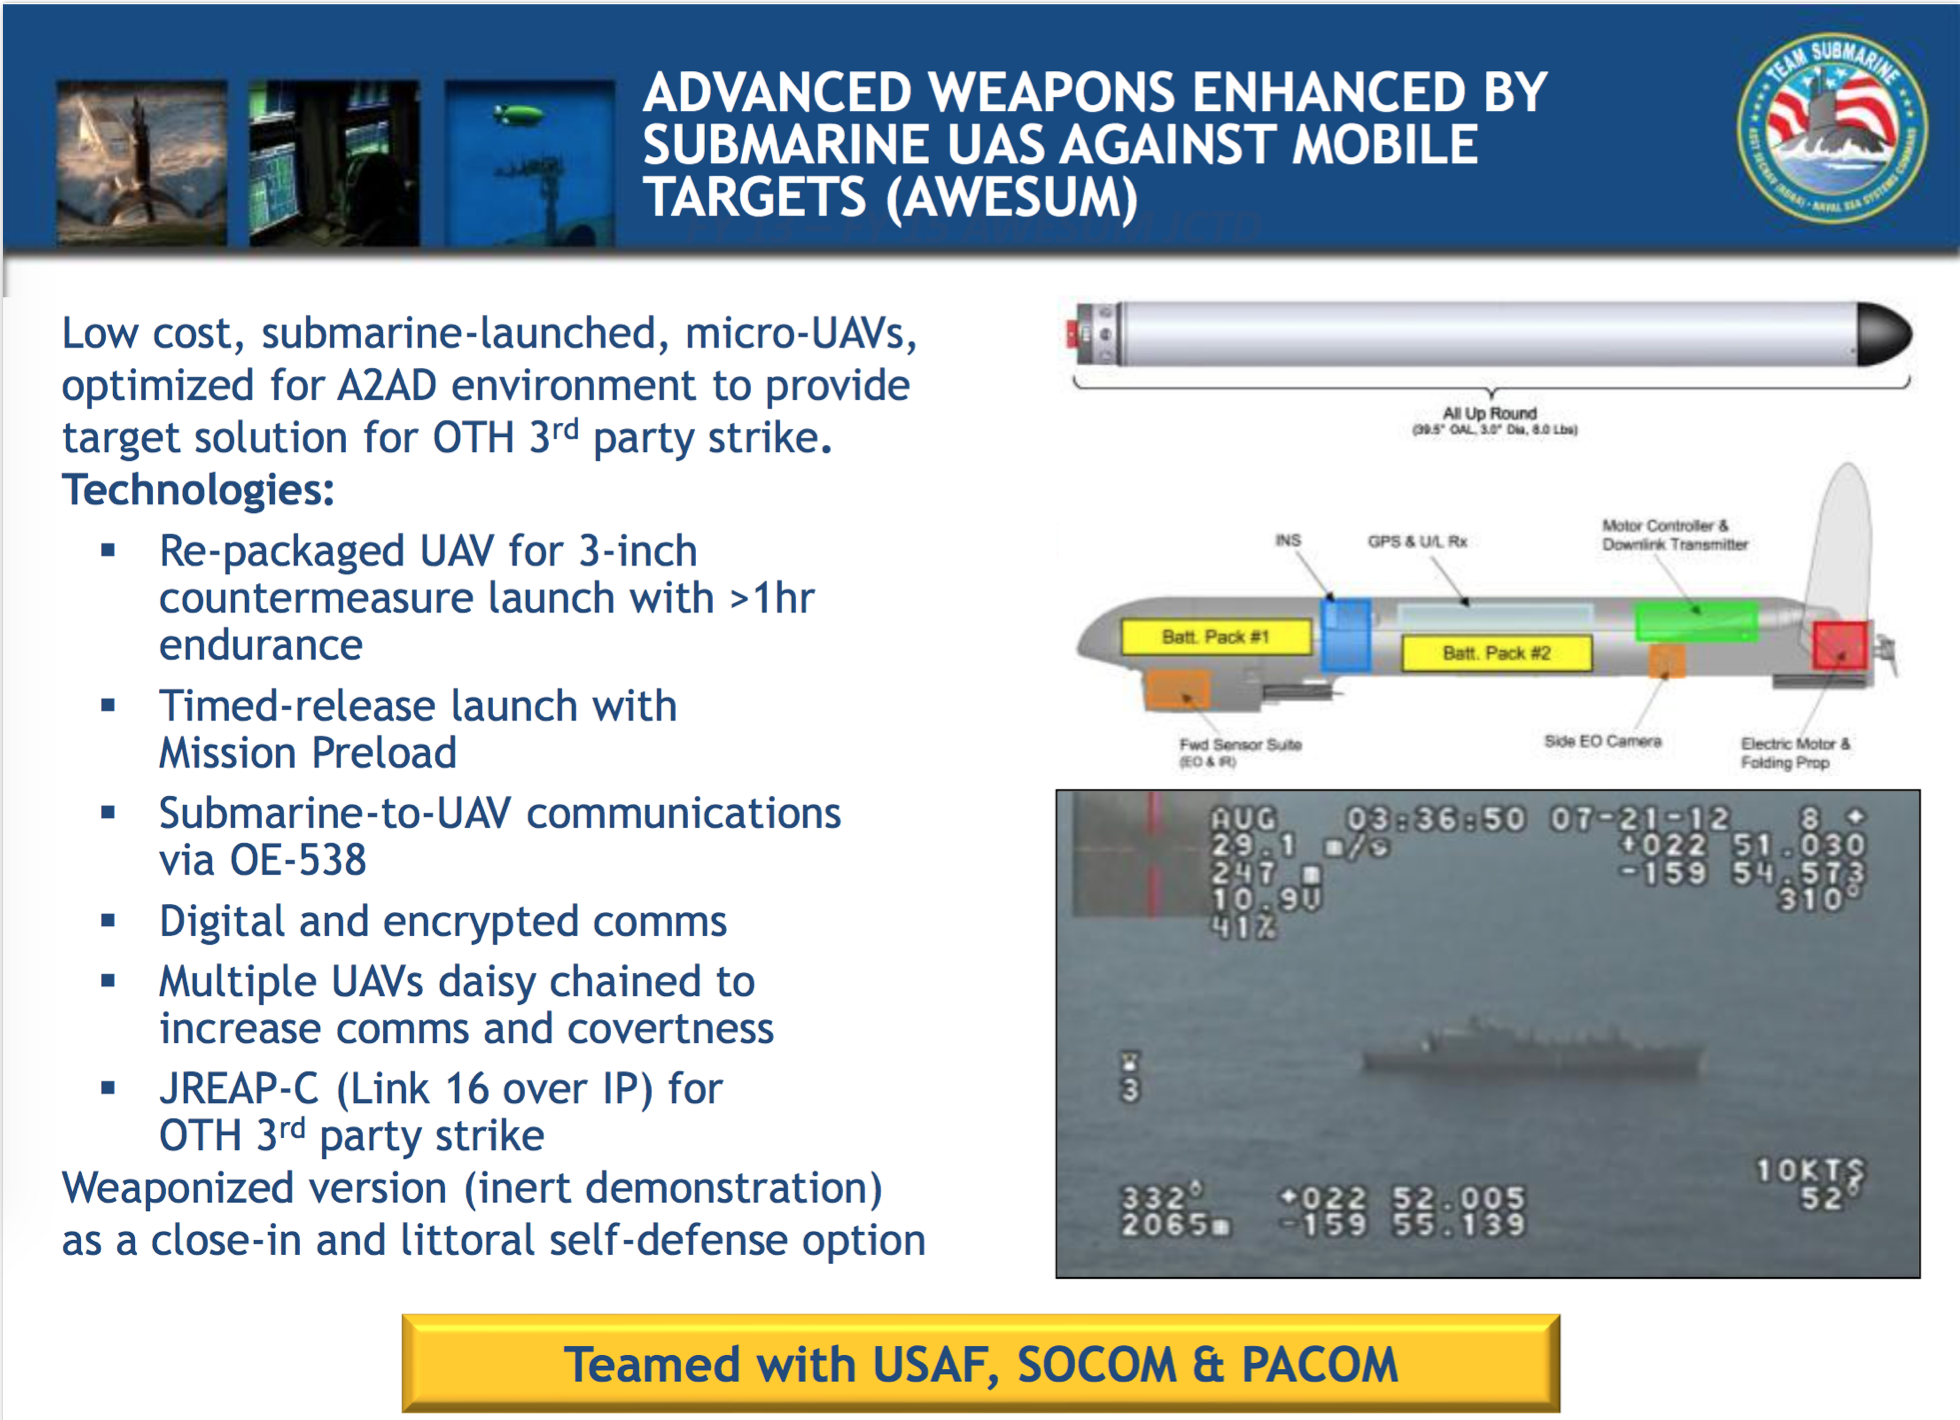 2013 PEO Subs Slide on AWESUM Program. NAVSEA Image